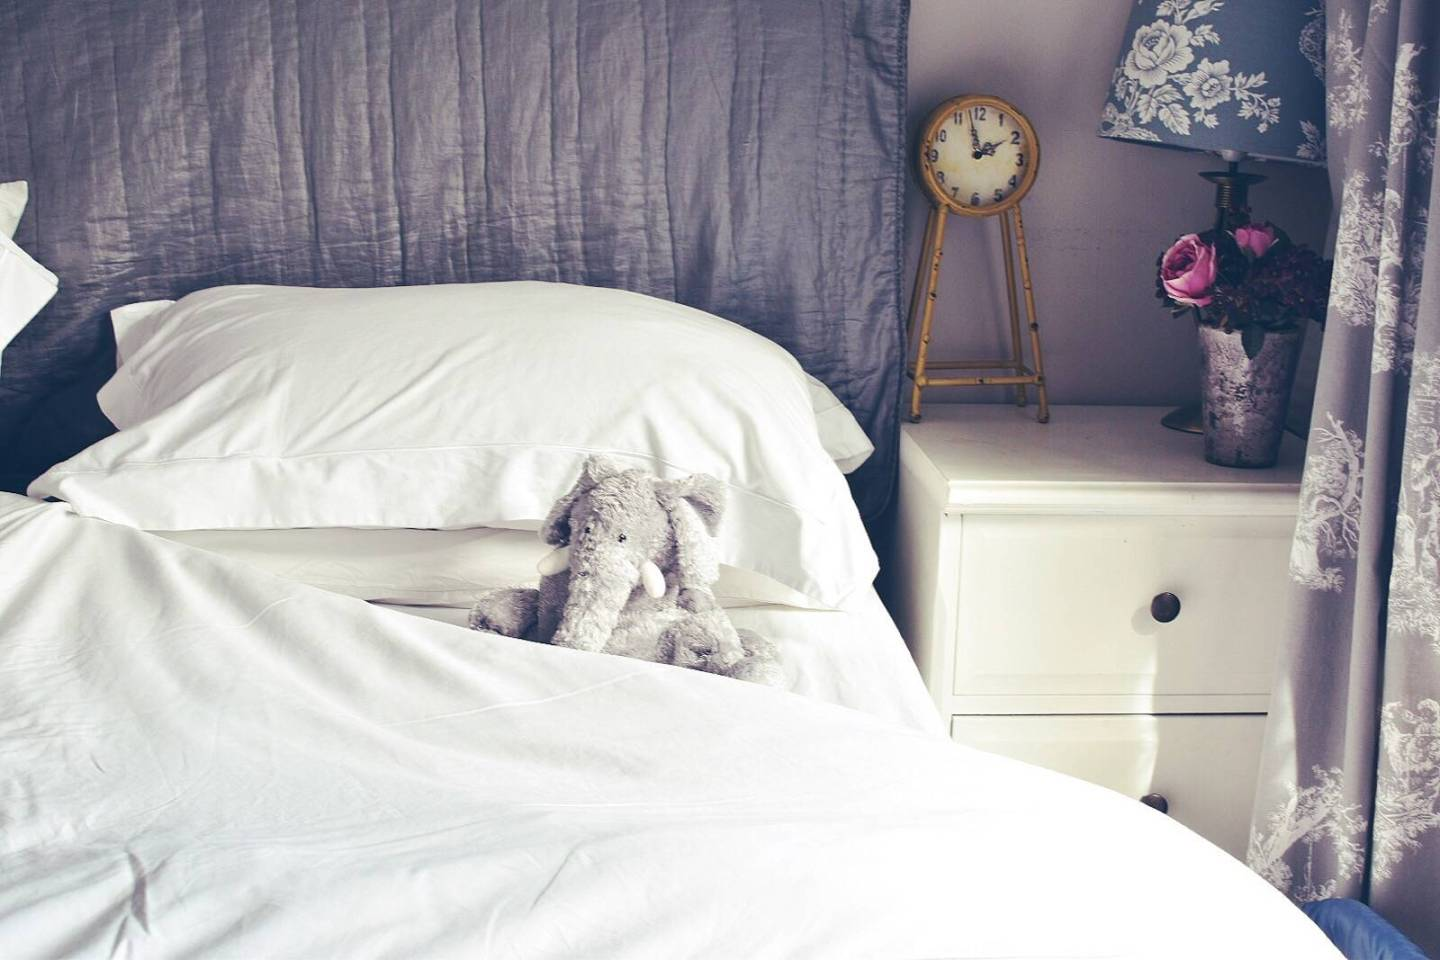 A Review of Whites Of London Luxury Bedlinen